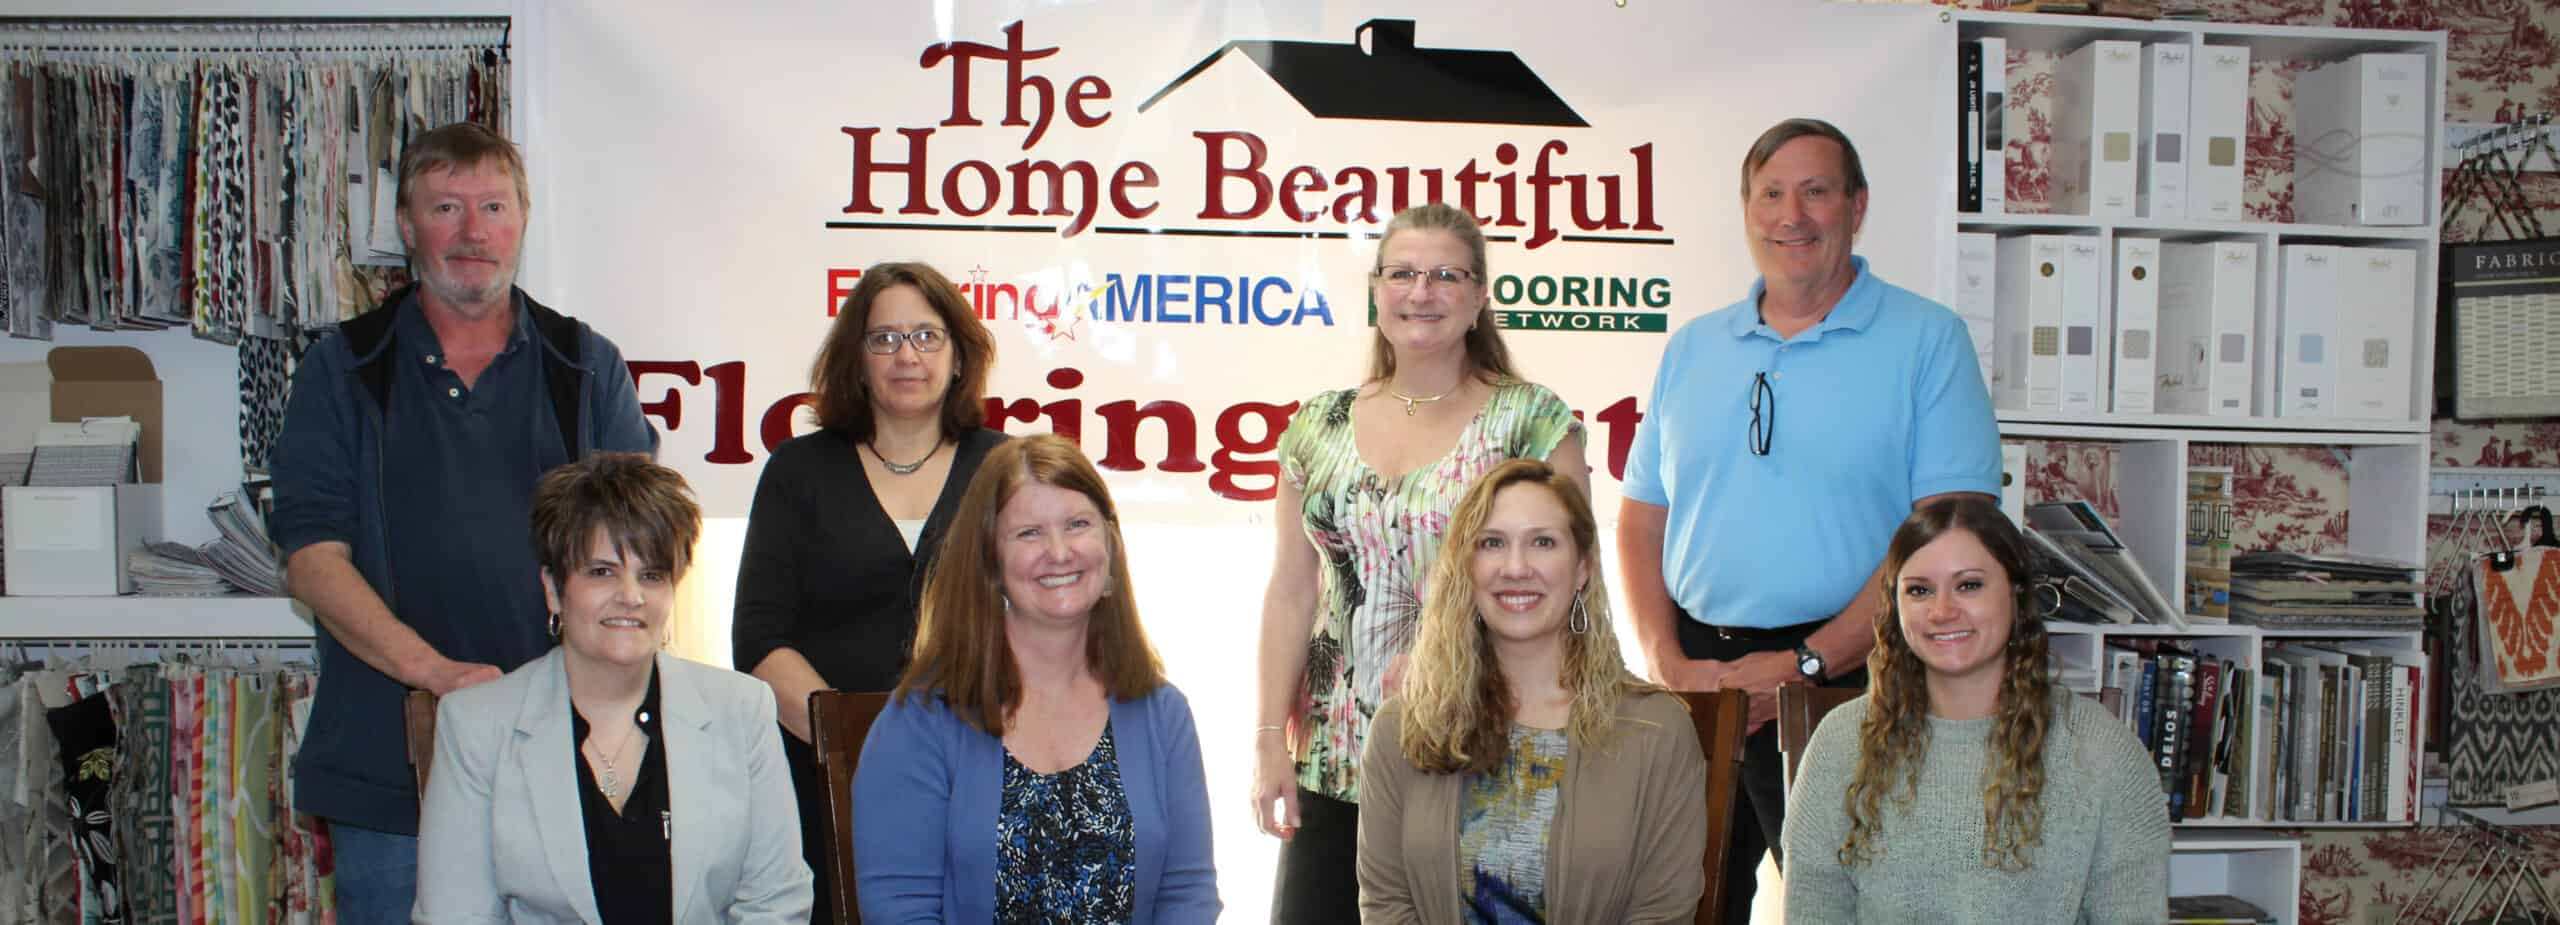 The Home Beautiful Employee Owners